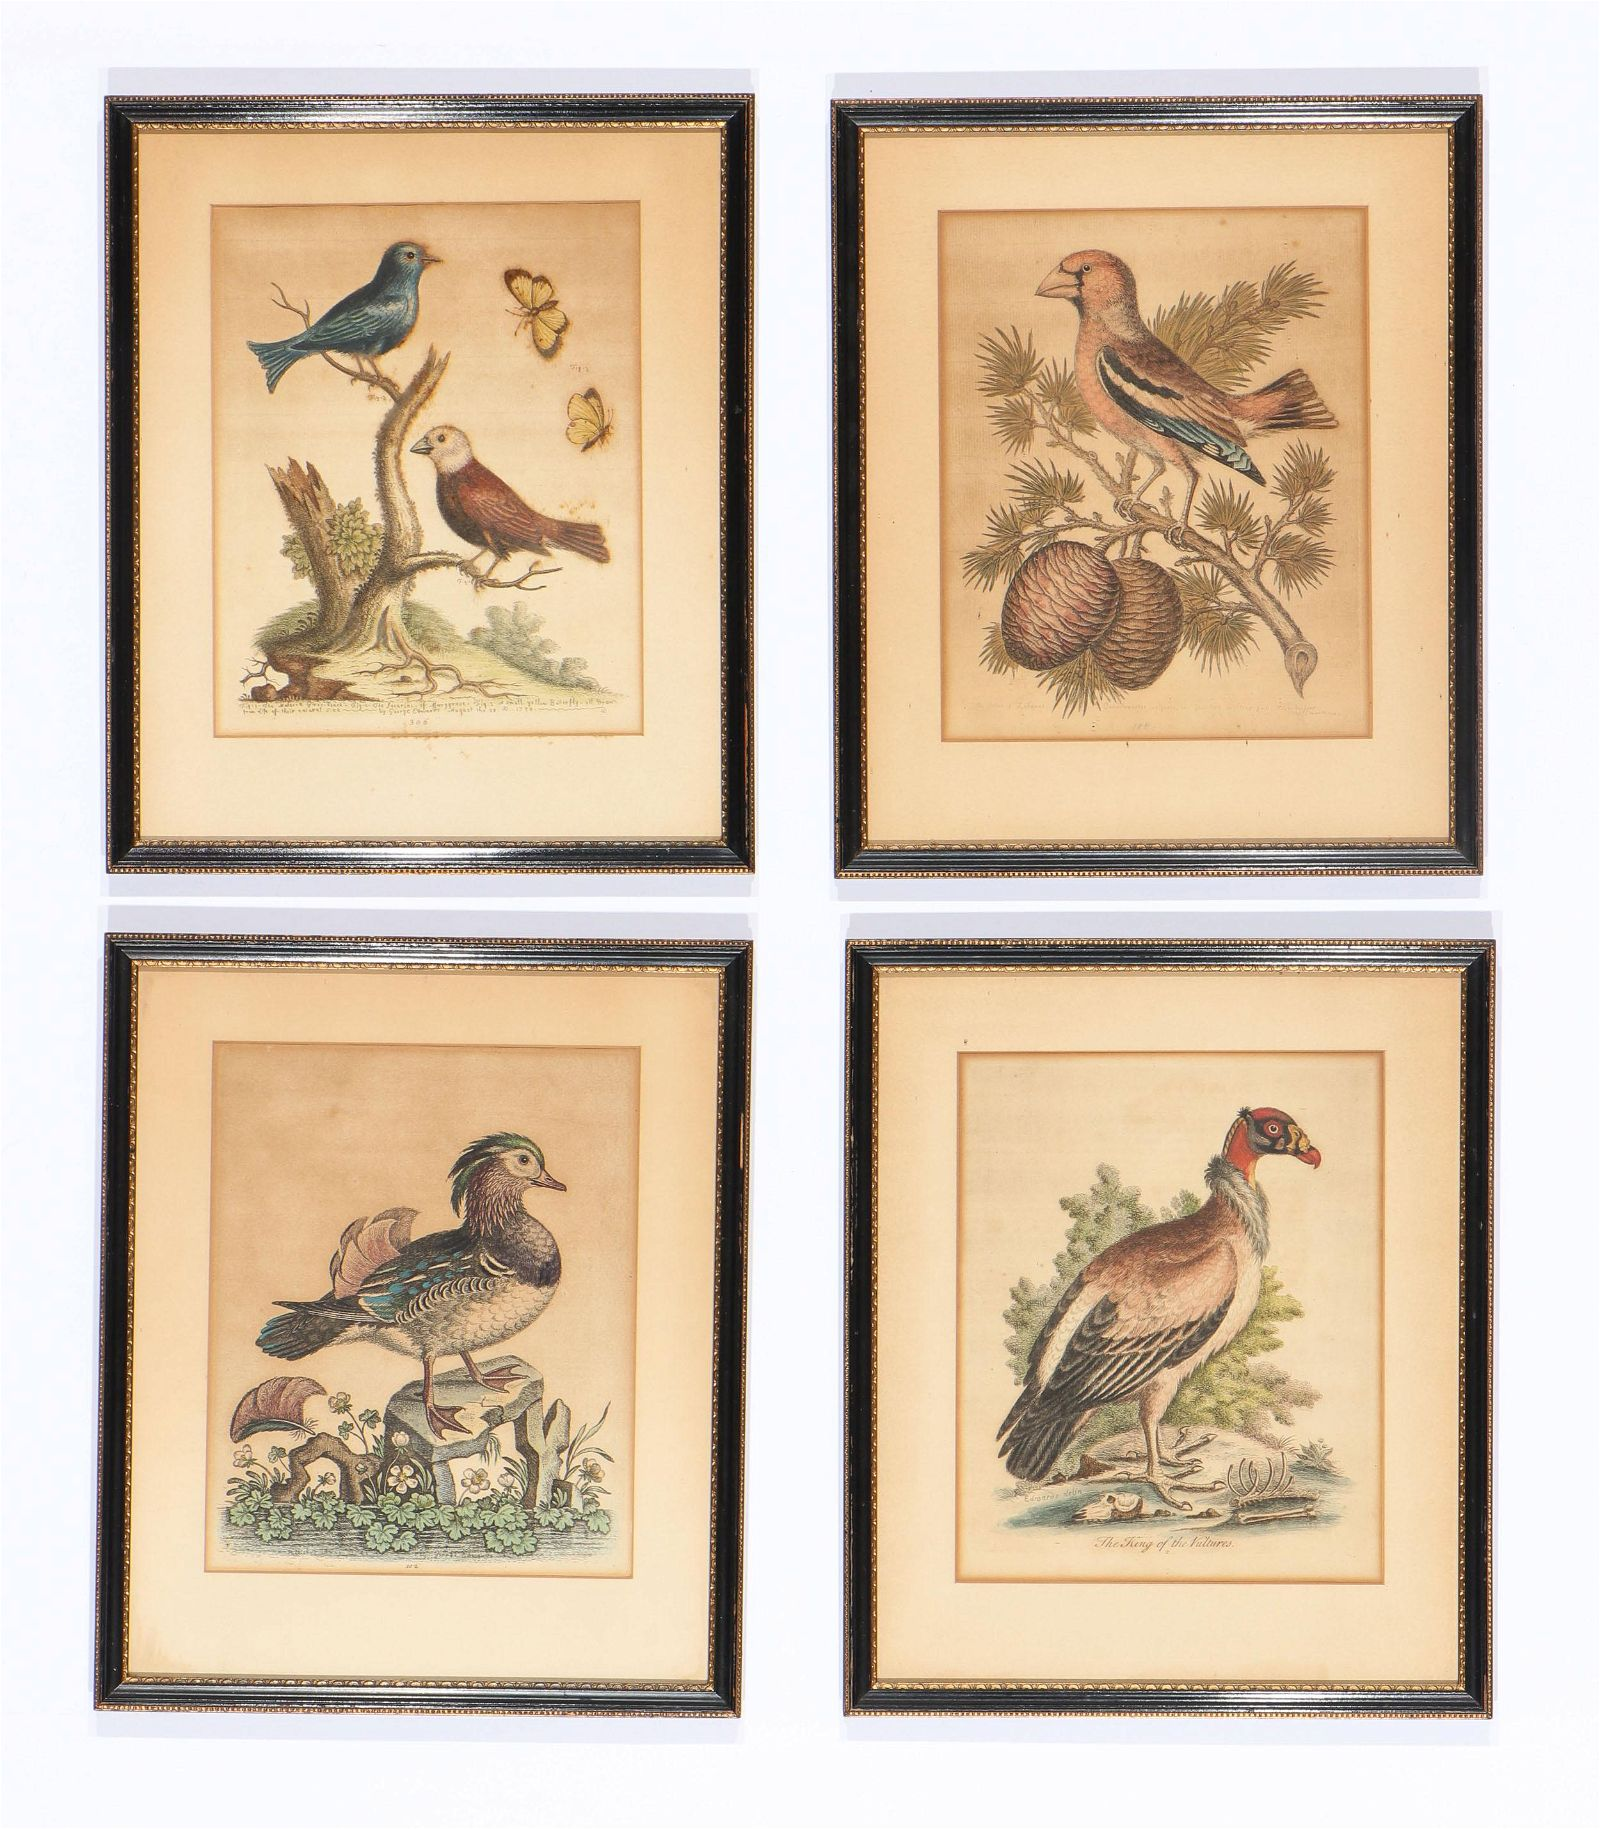 George Edwards (1694-1773) 4 hand-colored engravings